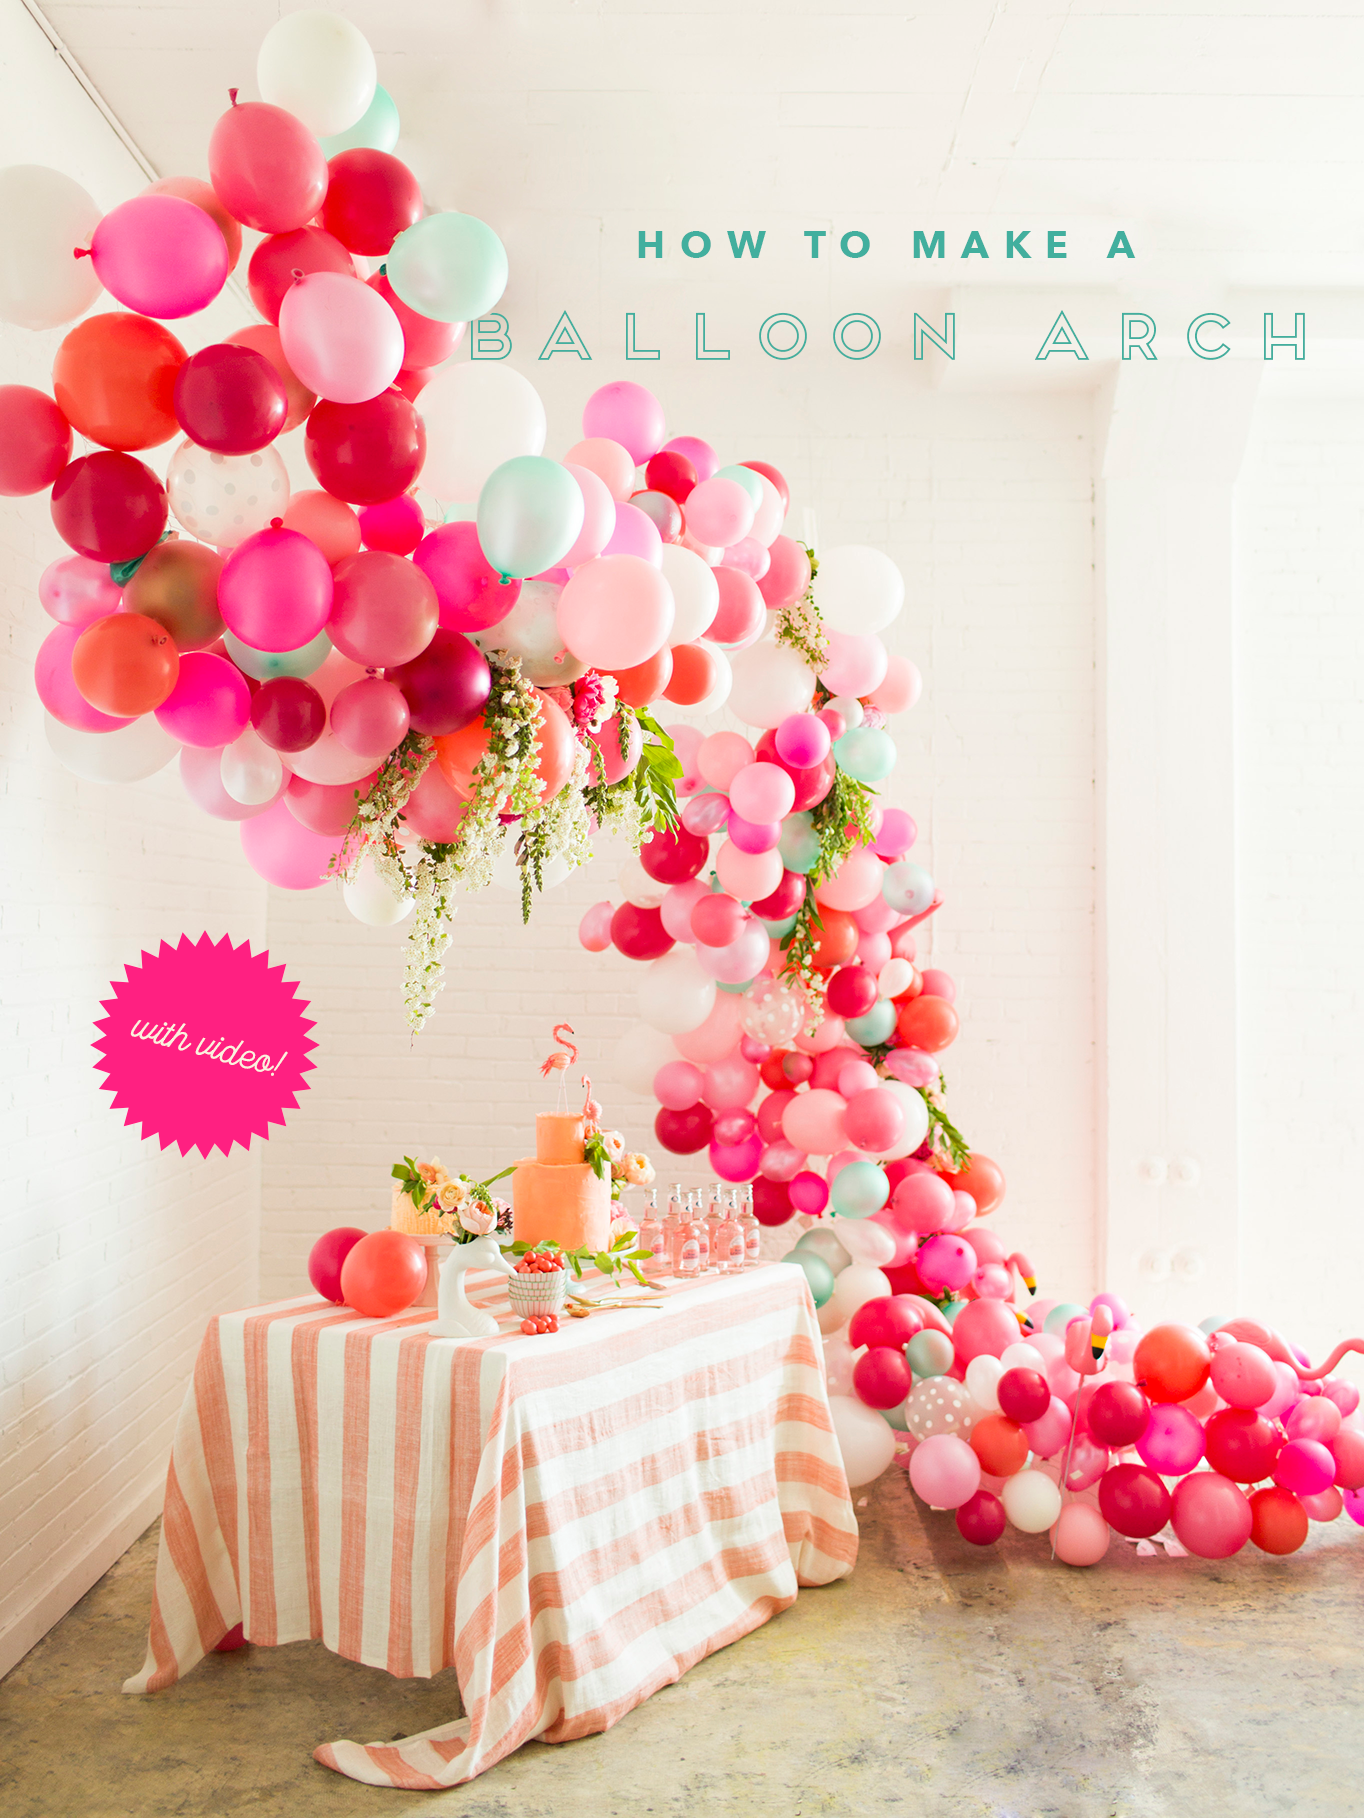 How To Make A Balloon Arch Video Reader Photos The House That